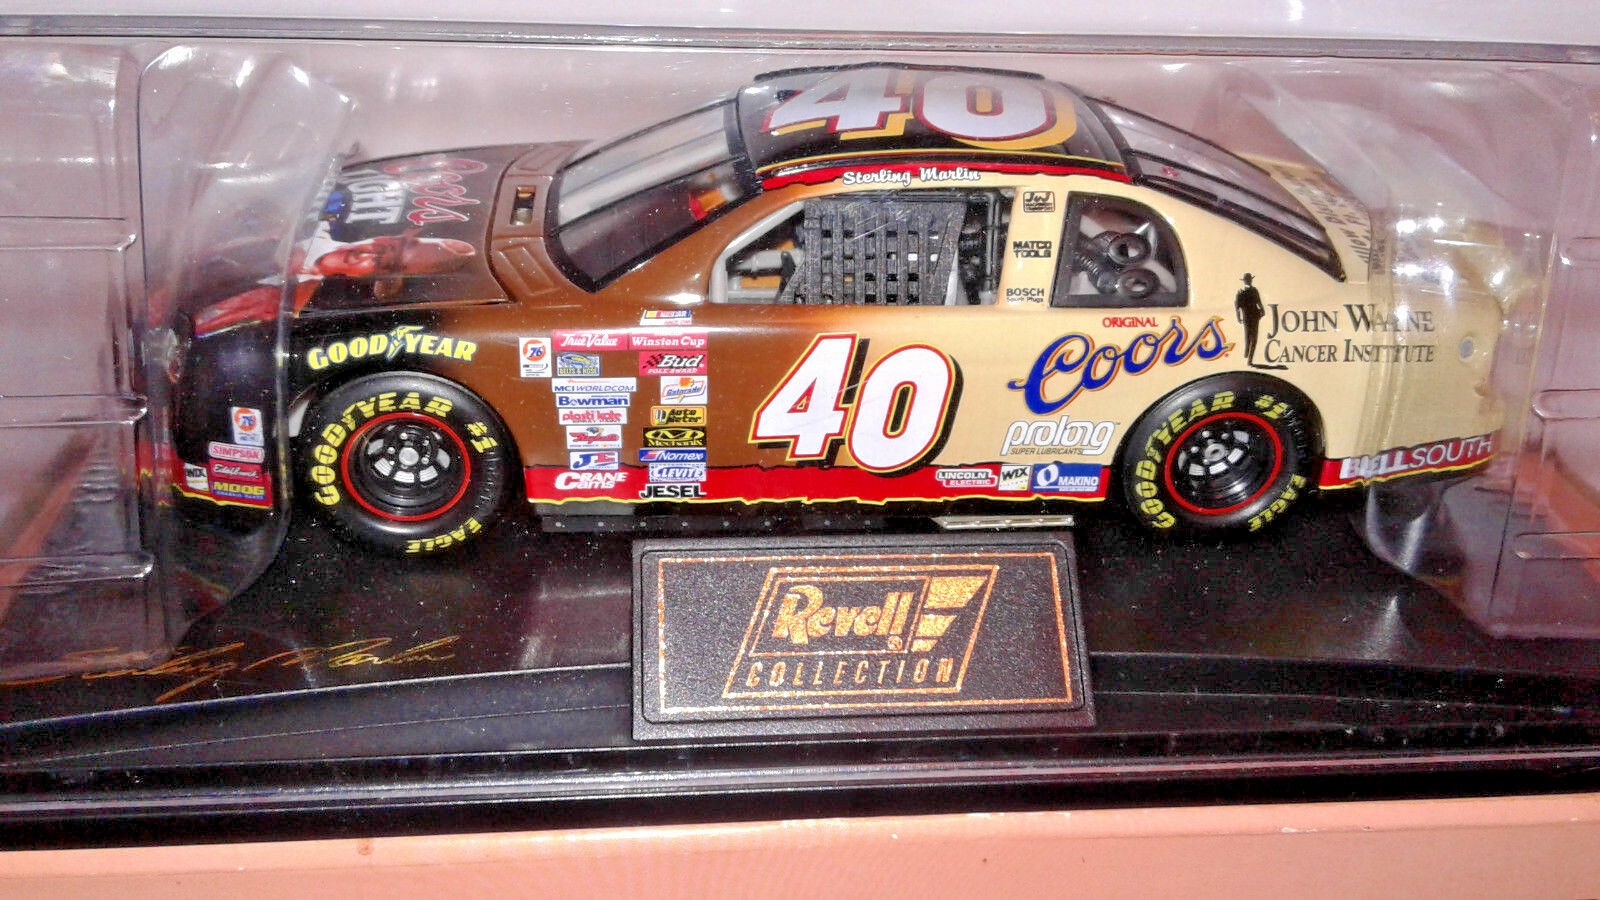 1999 Revell Collection Coors Light John Wayne  Monte Carlo, 1 24 scale